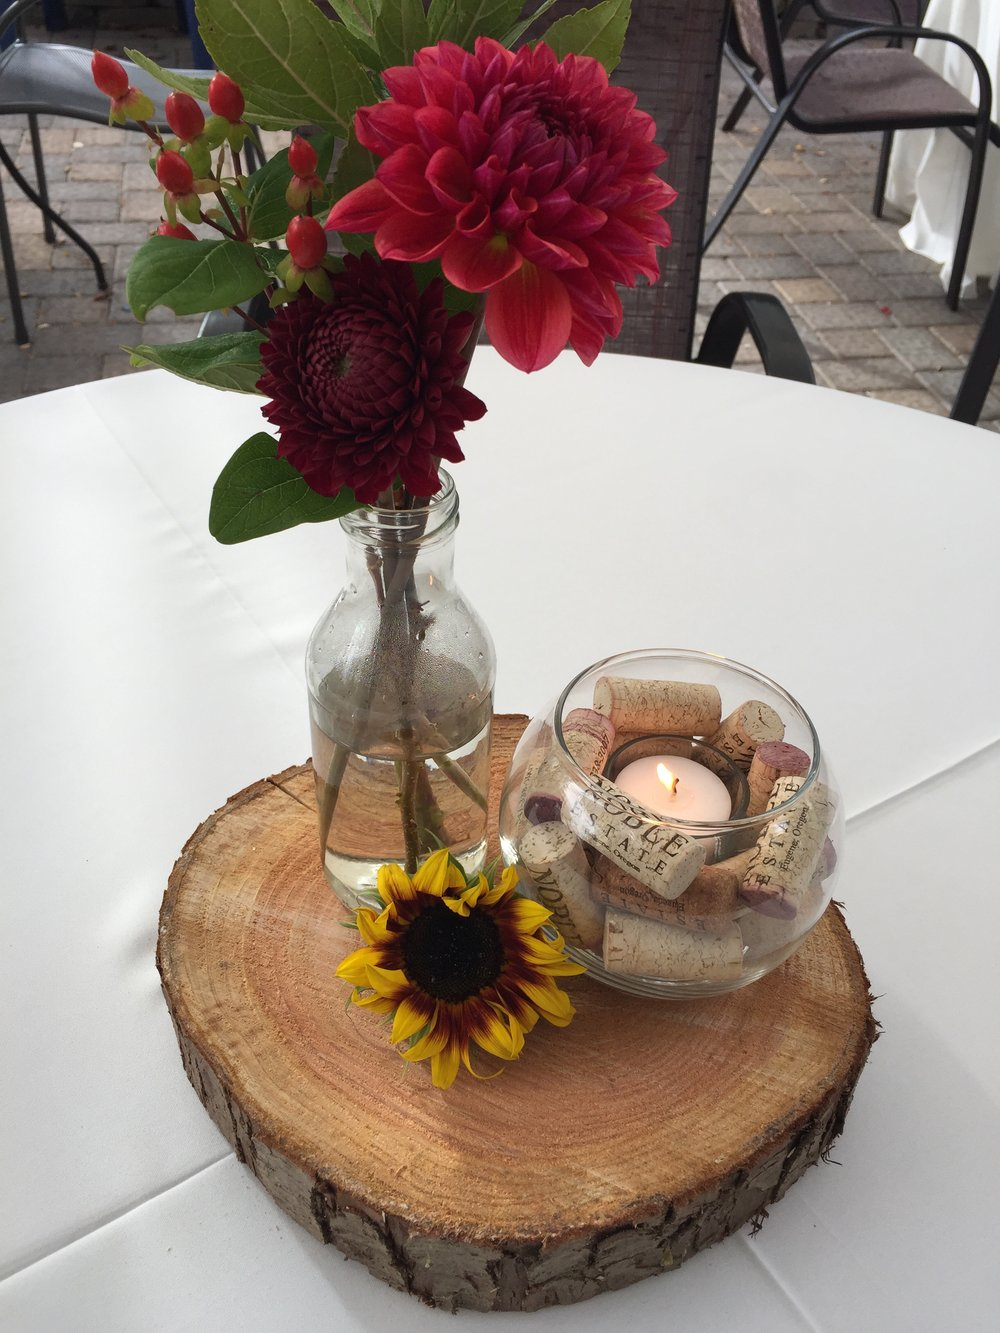 In September I was given the opportunity to help plan and execute a reception for the Lane Transit District's launch of the new West Eugene EMX line. I didn't take many photos that night, but this is one of the simple/rustic centerpieces I created for their reception at  Noble Estate Urban Winery .  It was a wonderful event to be a part of and I am excited to work on more corporate events in the future!